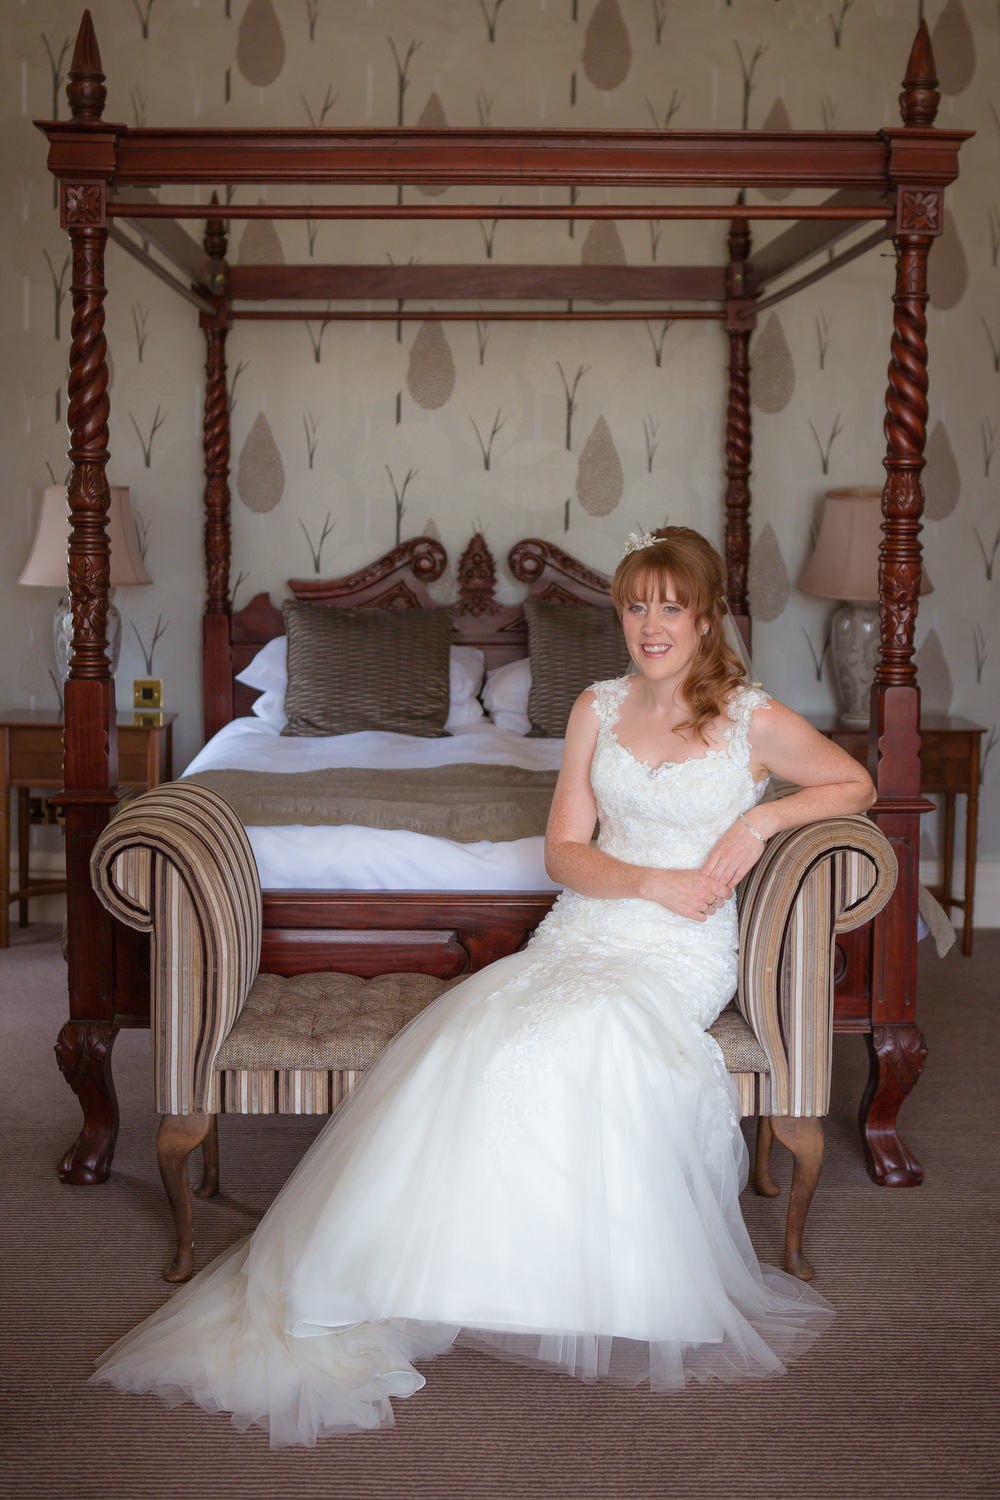 charnwood_weddings_Rothley_Court_Kelly_Rich164.JPG